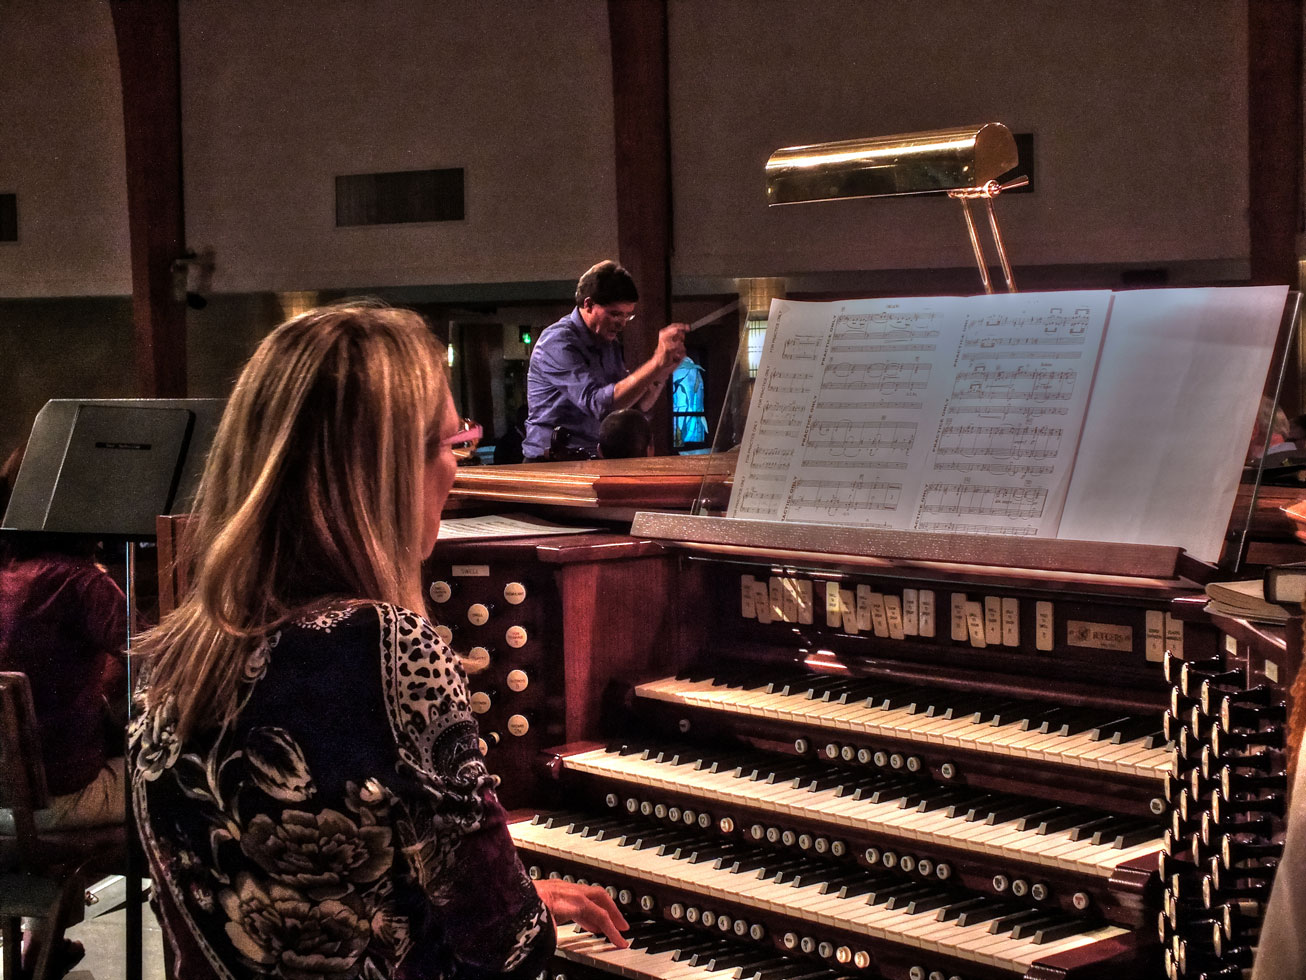 Linda van Niekerk practices with the strings on the Adagio in G minor, at Forest Lake Church on Oct. 5